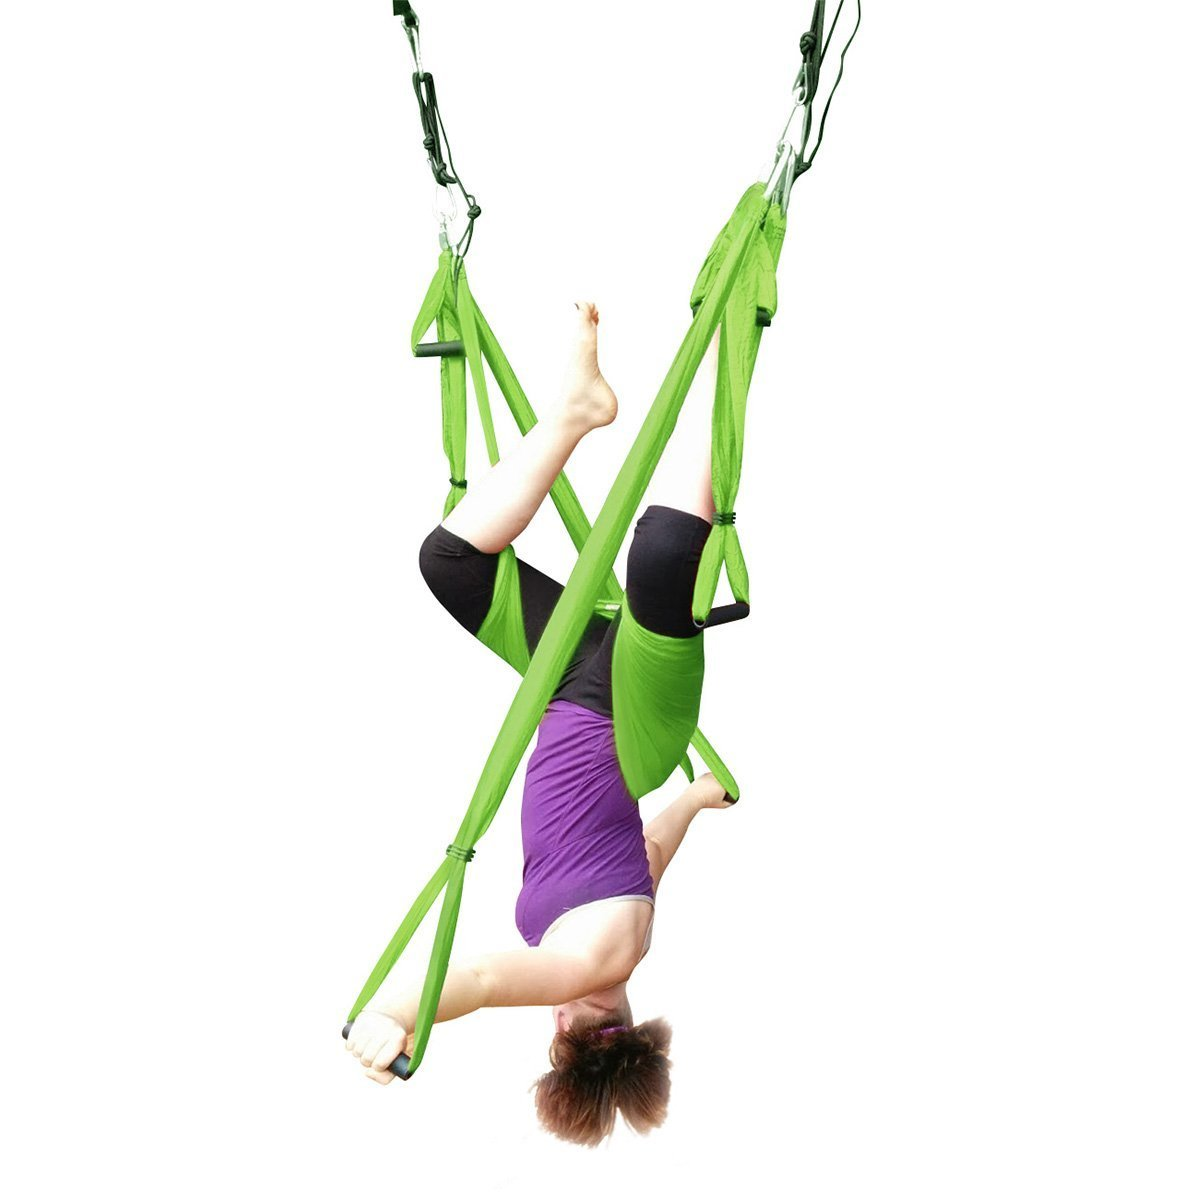 Ranbo exercises Yoga Inversion Swing - Anti-Gravity Aerial Trapeze movement - Flying Hammock Sling equipment- Relieves Back Pains, Improves your Strength, Balance, Flexibility and Endurance (Green)